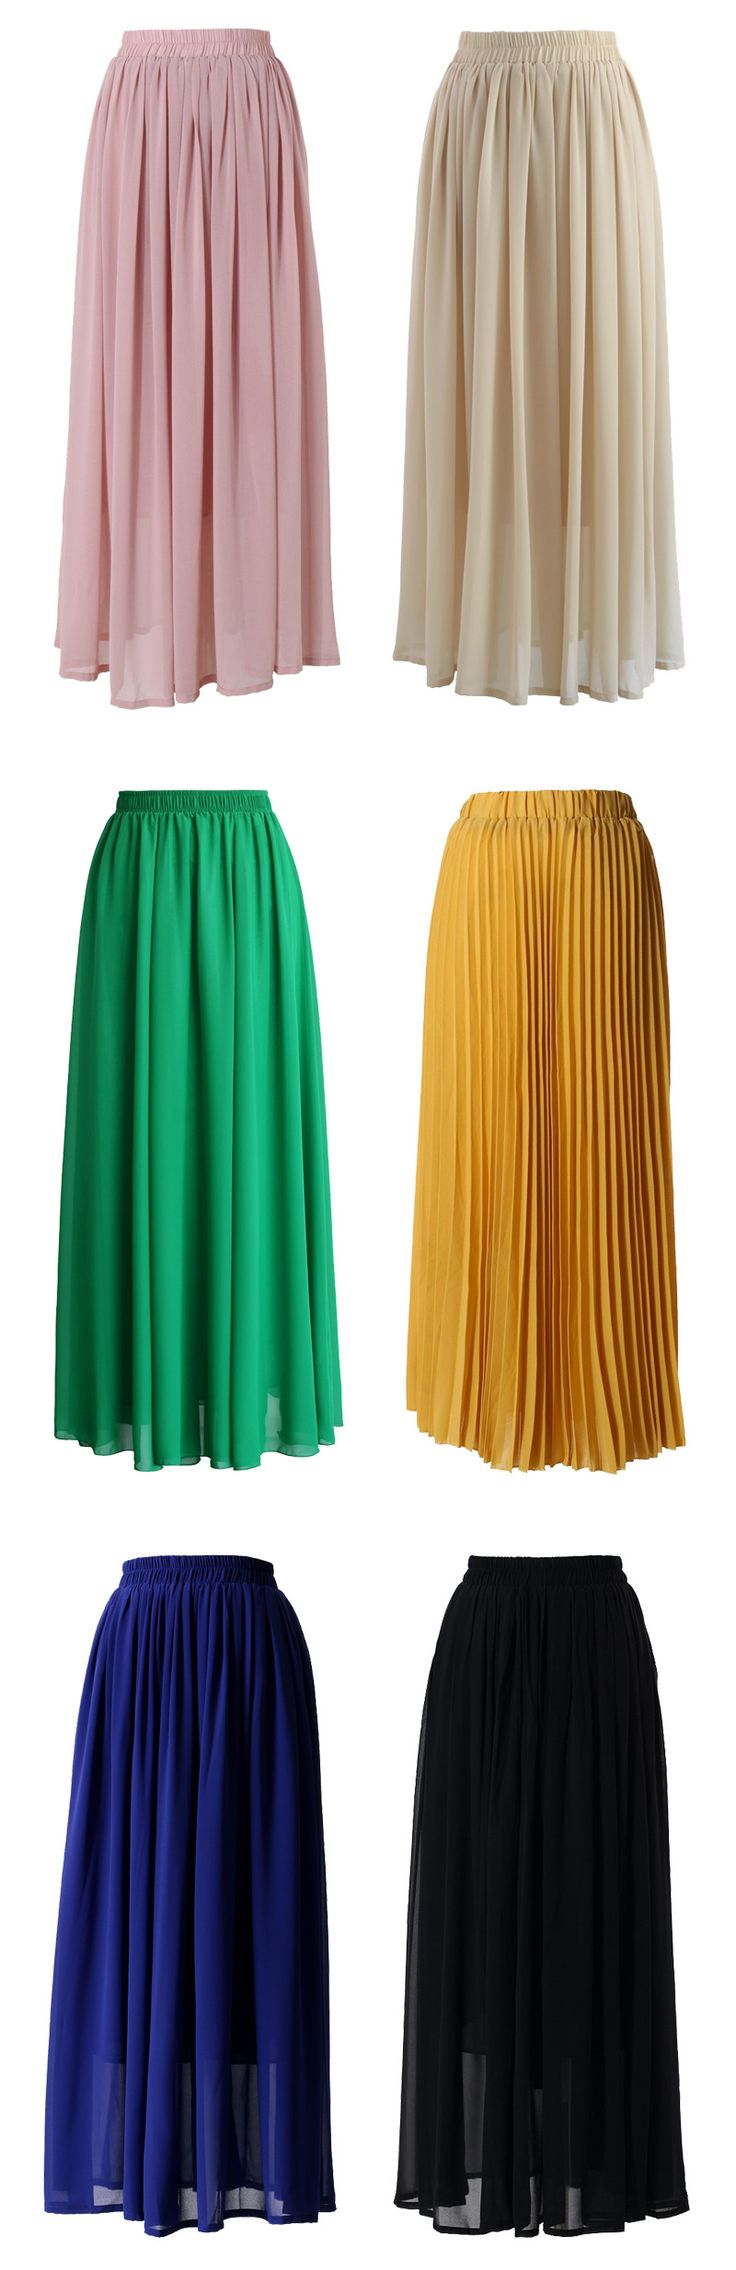 Maxi Skirt Collection